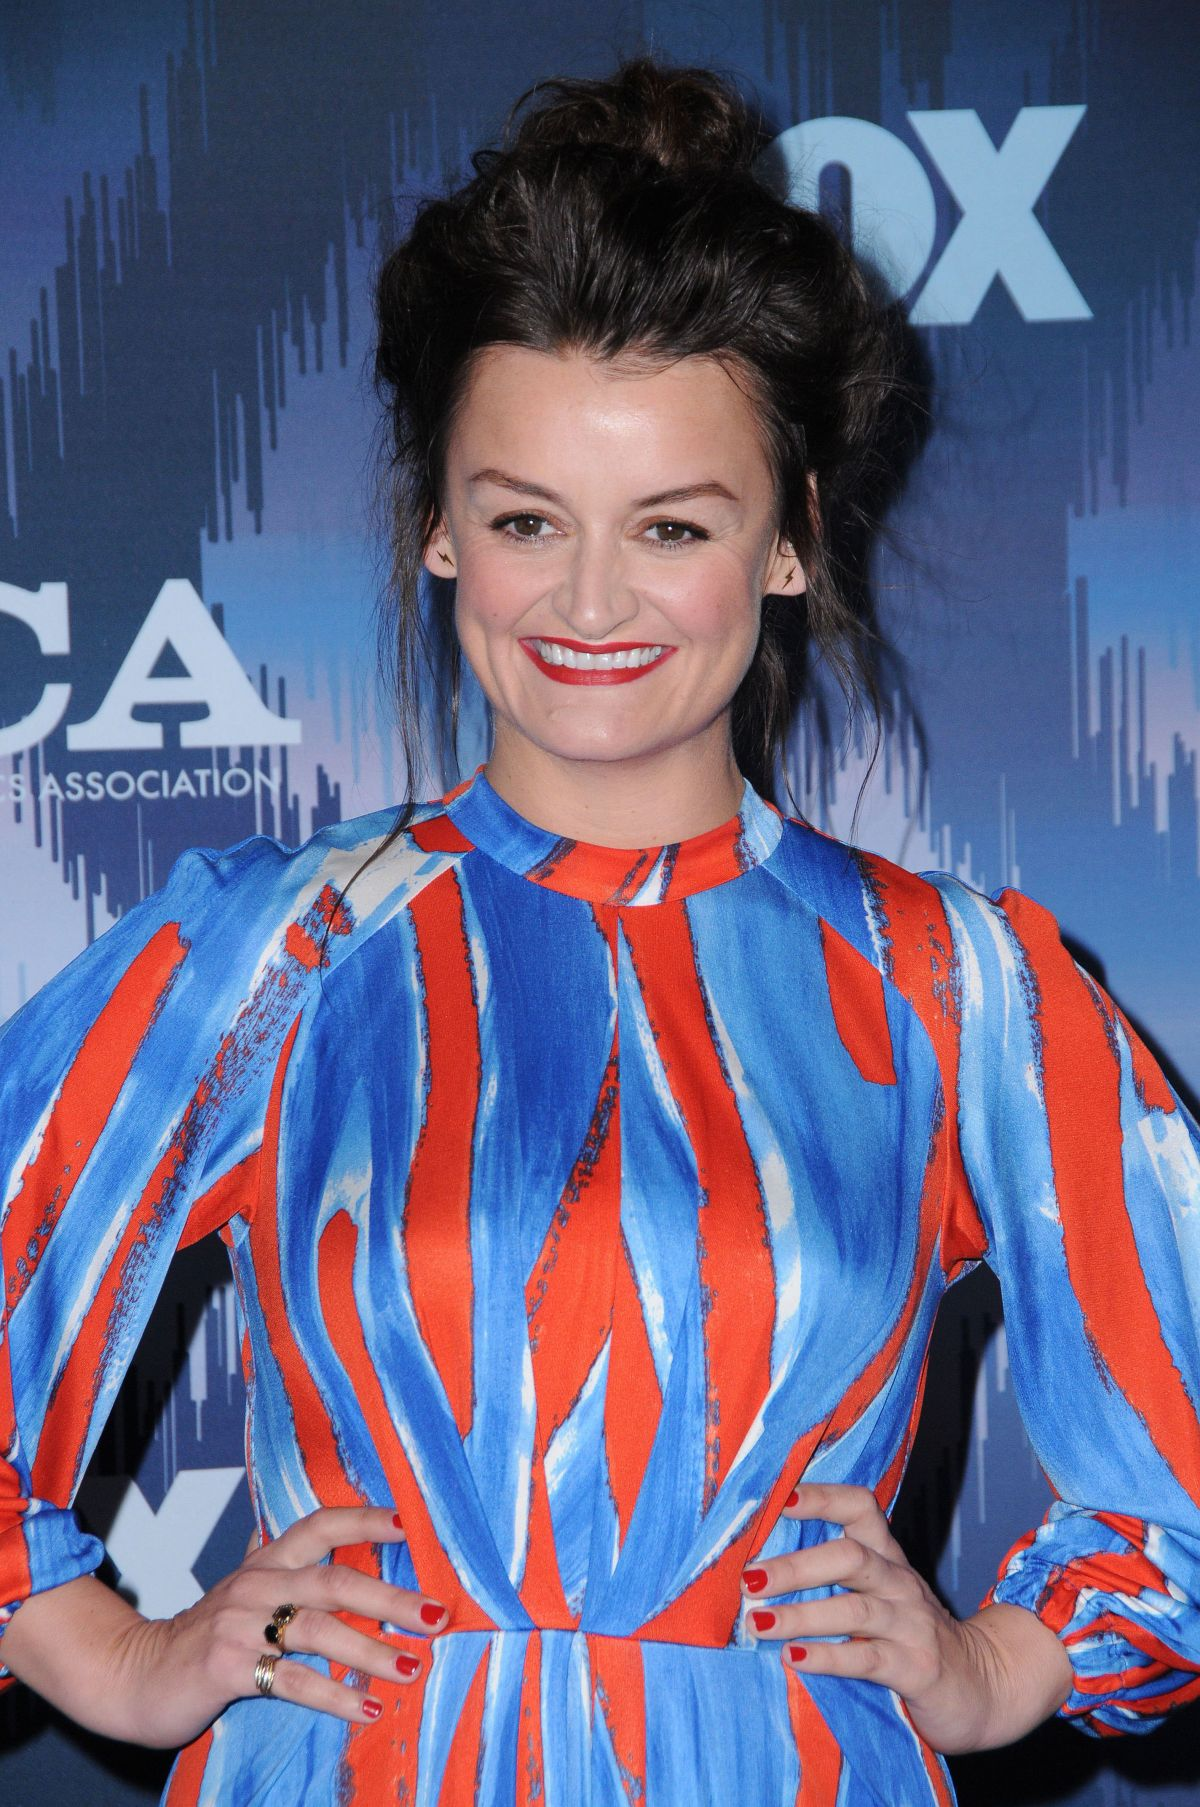 ALISON WRIGHT at Fox All-star Party at 2017 Winter TCA Tour in Pasadena 01/11/2017